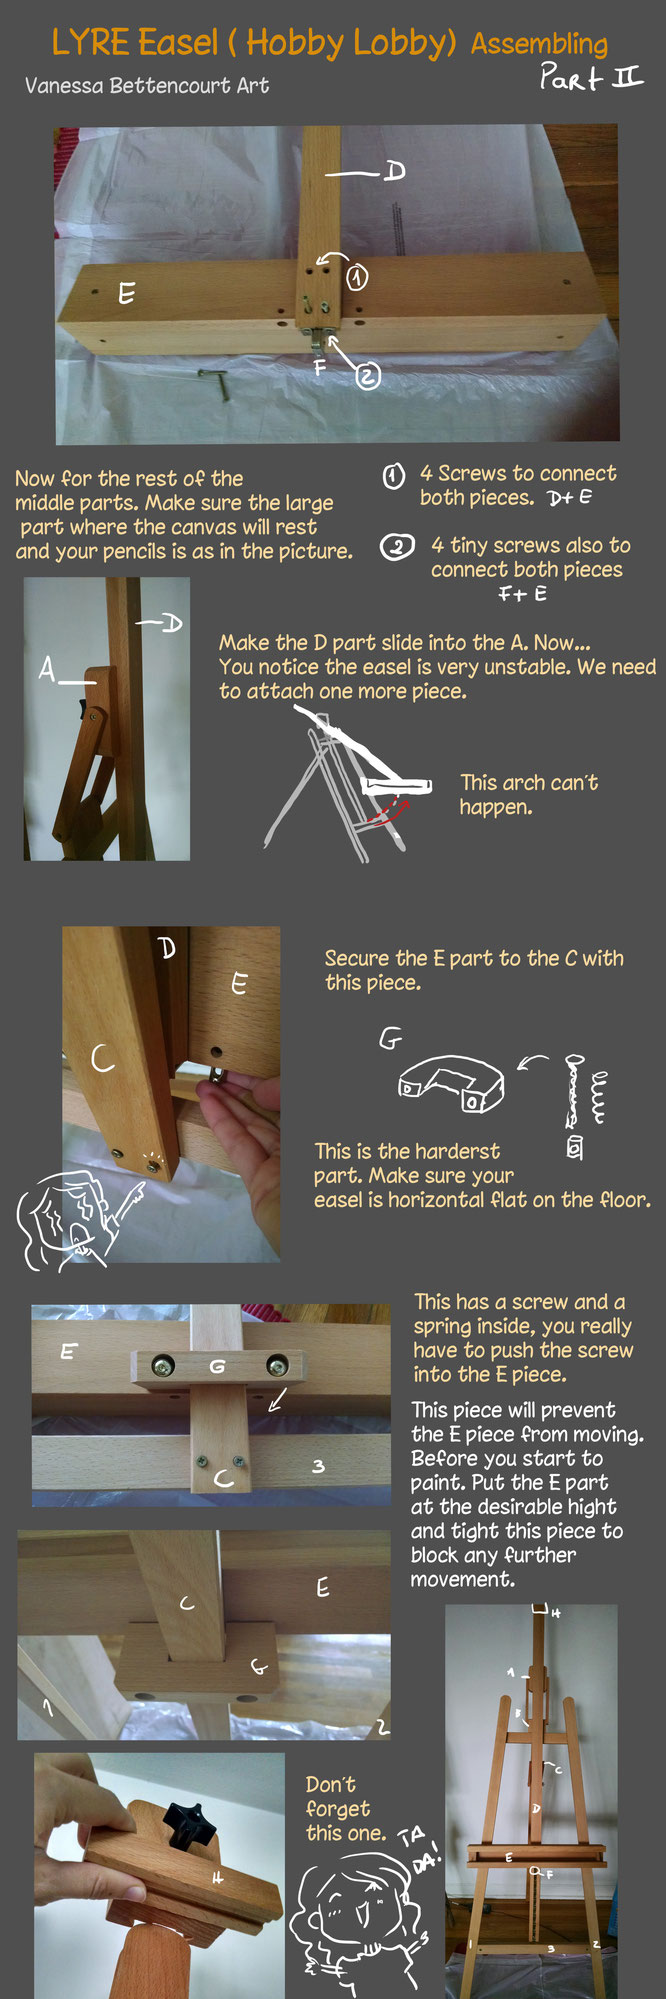 tutorial fineart traditional art lyre easel assembling hobbylobby lyre tutorial  easel lyre assembling easel LYRE studio setup  easel traditional